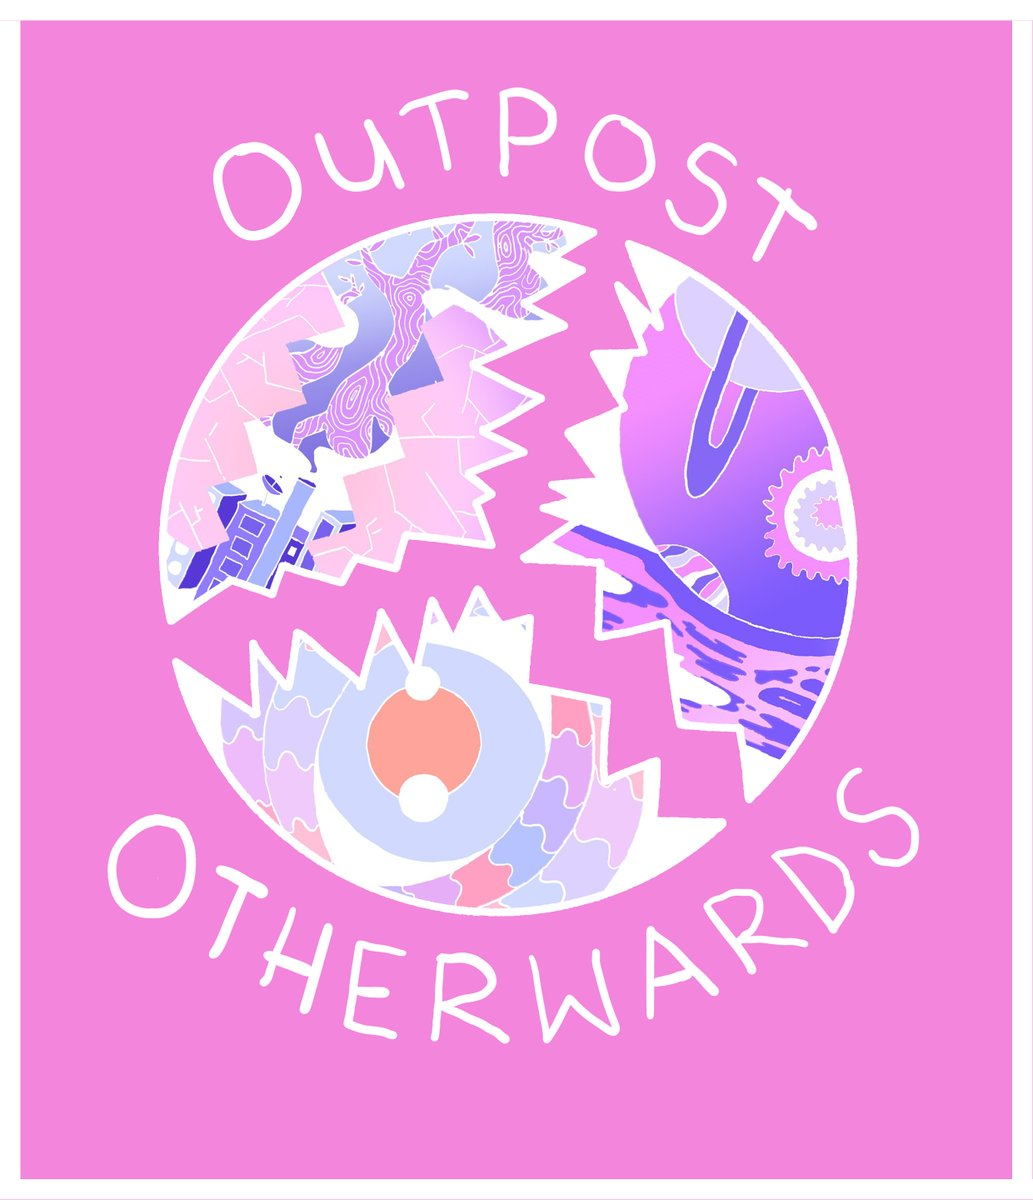 Oh n! A spacetime rift has caused 3 neighboring dimensions to collapse into 1 new, pocket-realm: OTHERWARDS  In Outpost Otherwards, a textbased RPG, beings from different realities co-create a new community in this unknown realm  Starts 6 Aug on Discord. DM to book a character! pic.twitter.com/LB6RbqfzcJ